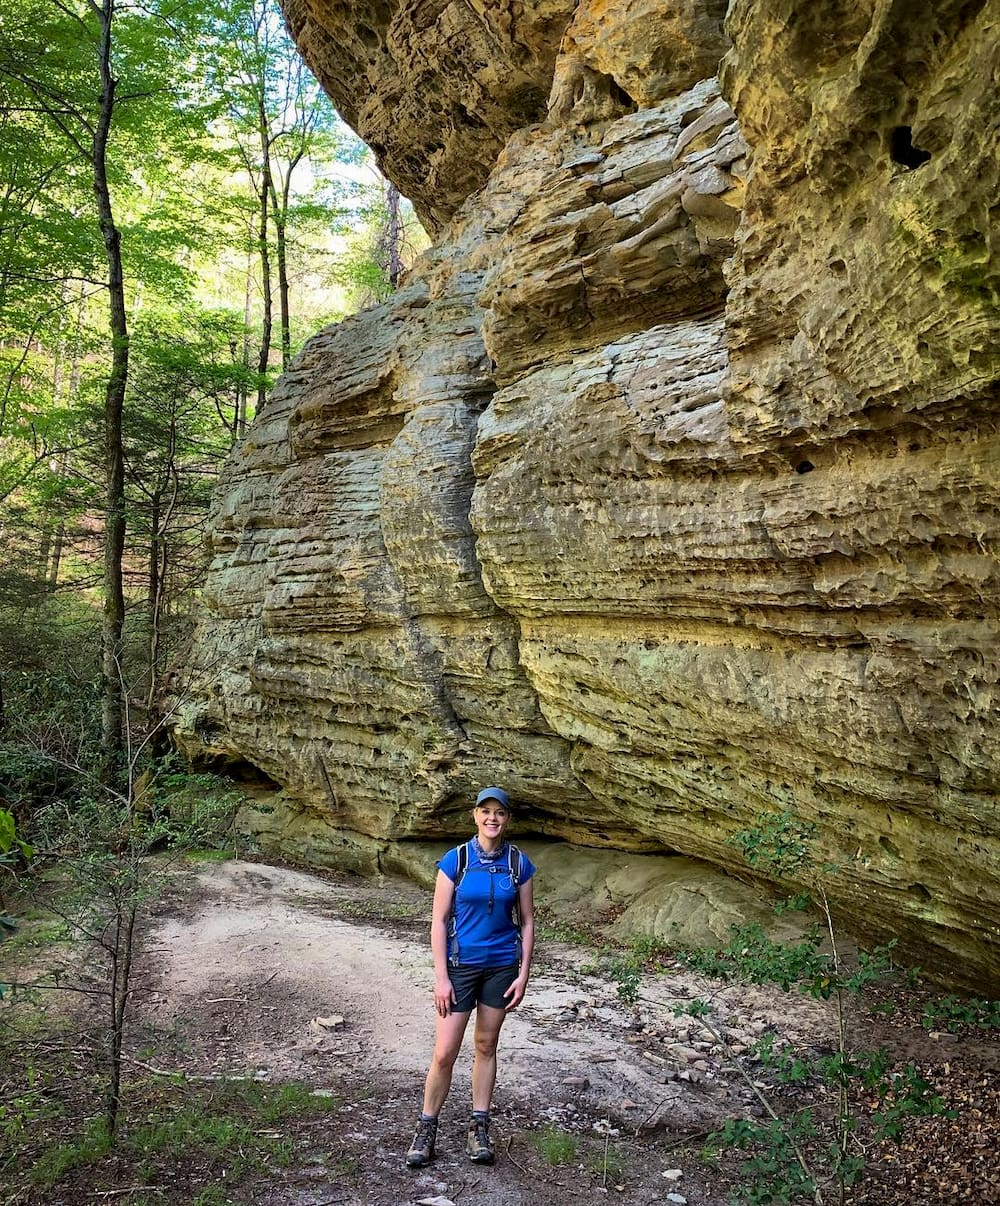 Woman standing next to rocks with forest in background